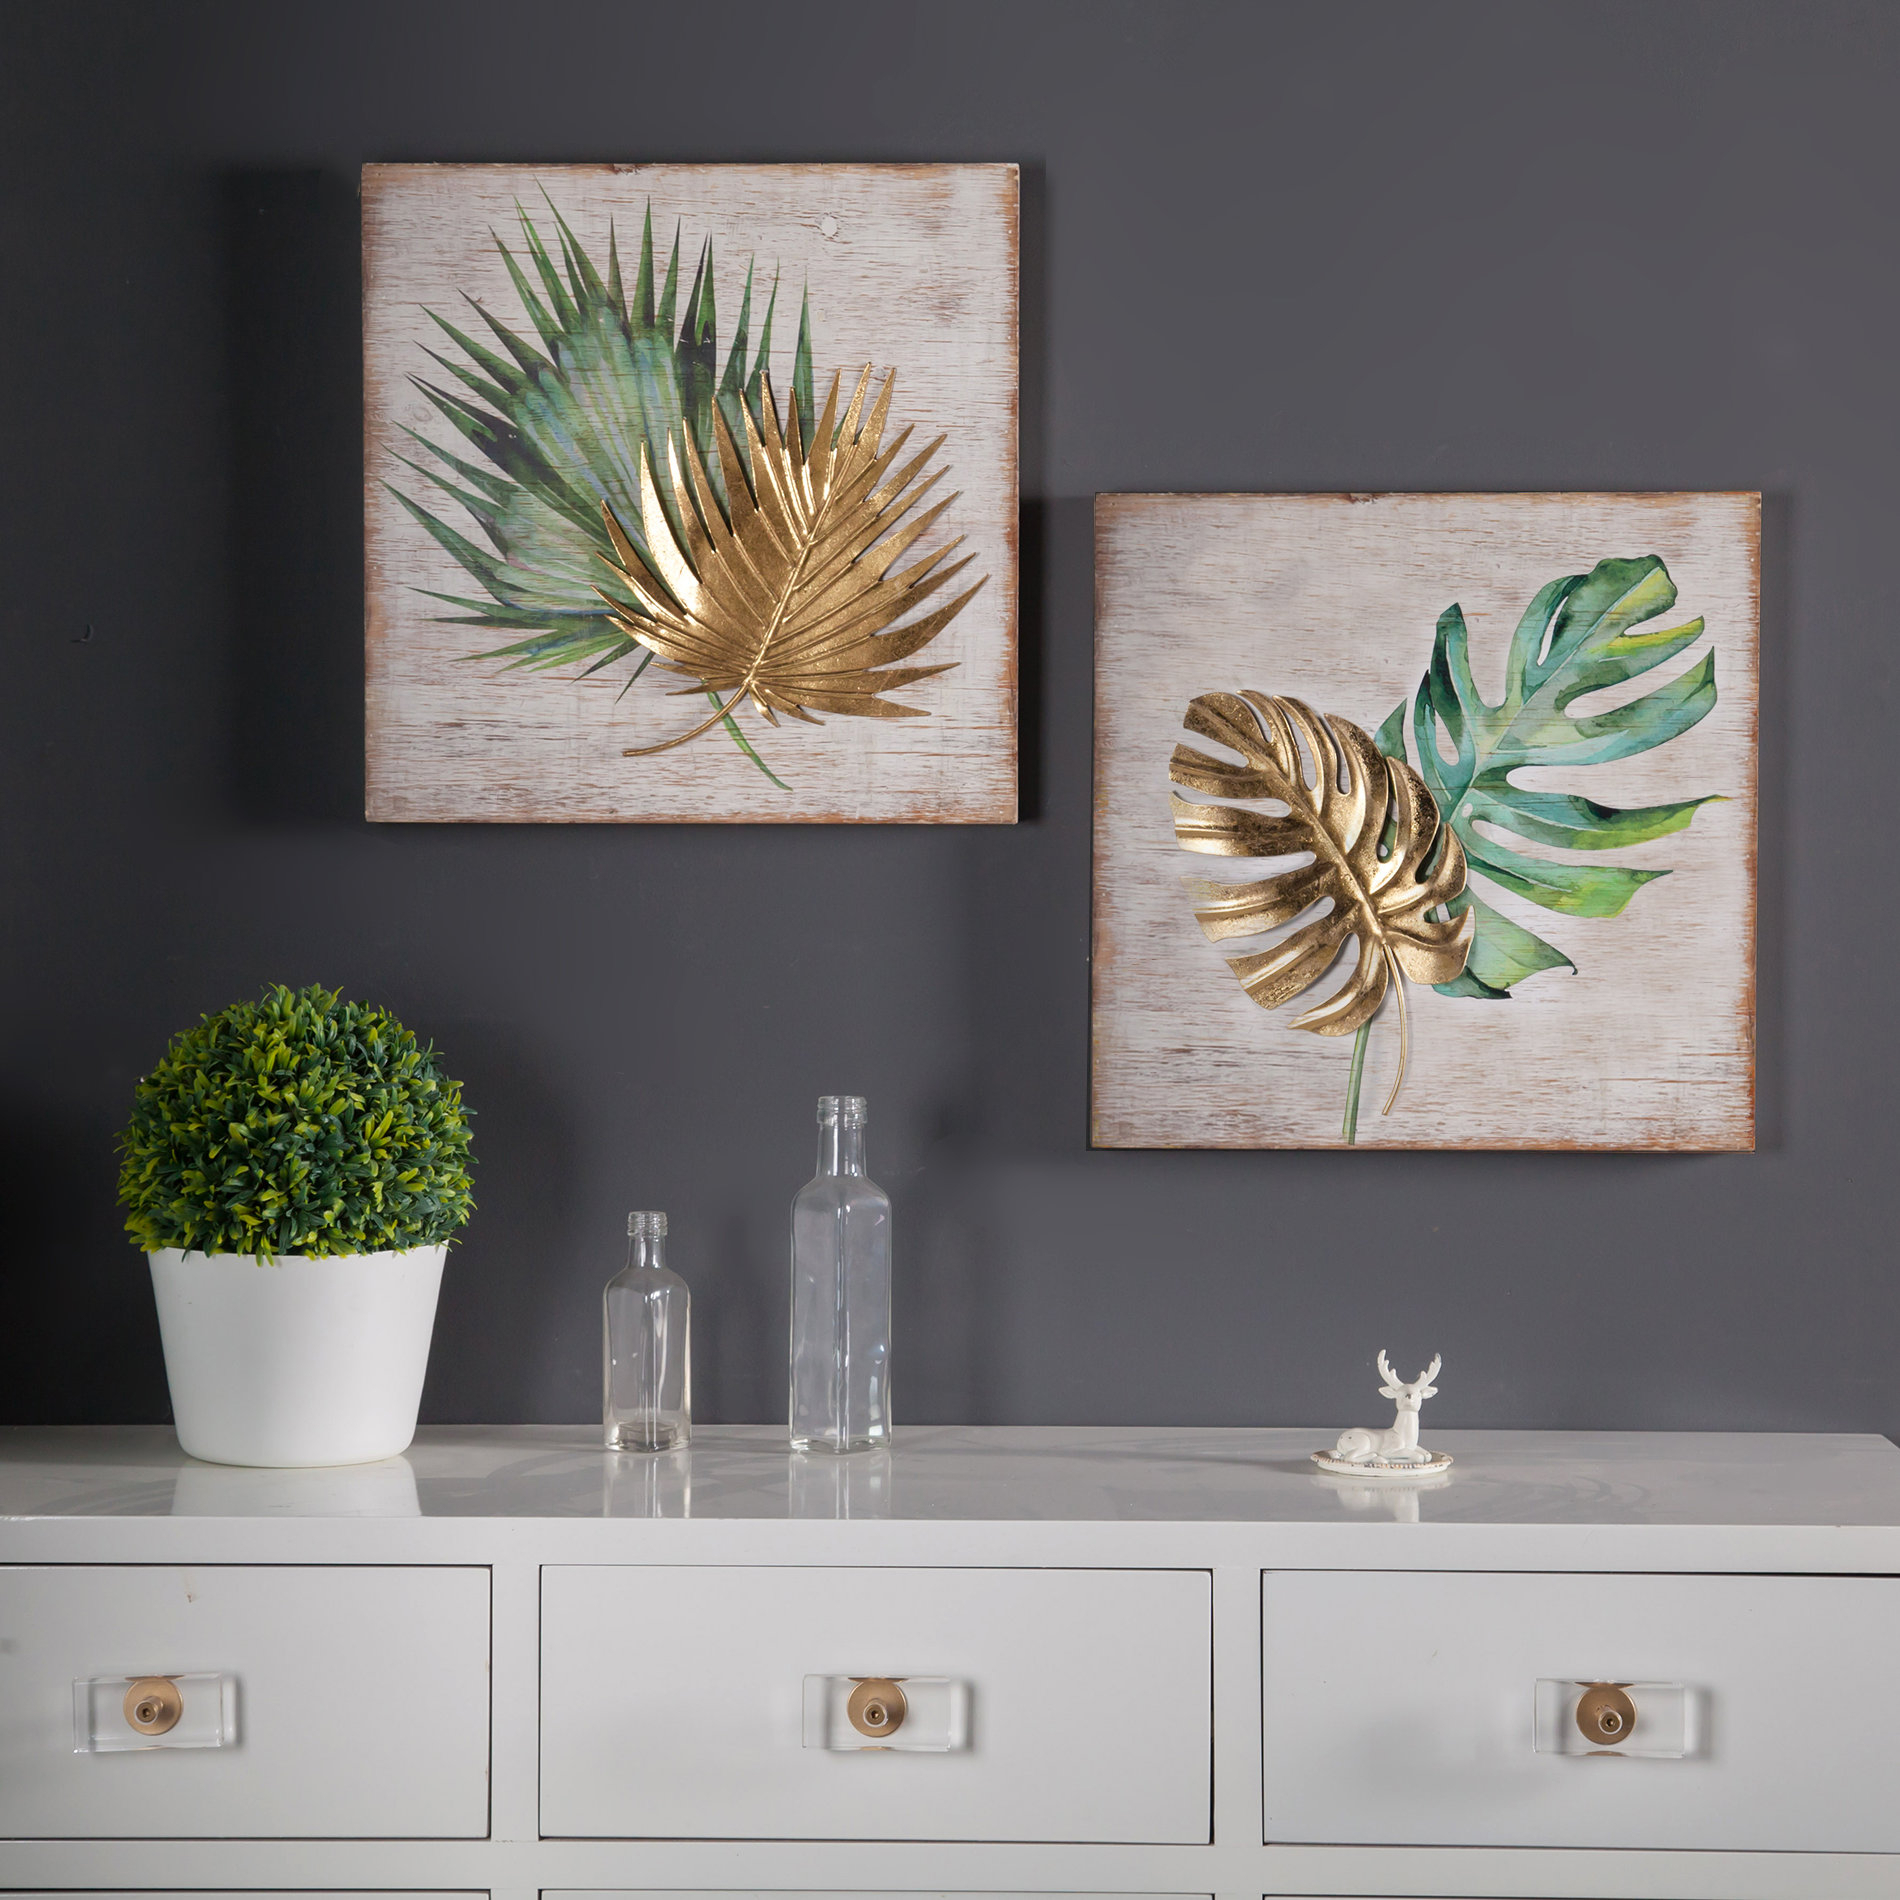 2 Piece Wall Decor Set | Wayfair Throughout 2 Piece Starburst Wall Decor Sets (Gallery 5 of 30)